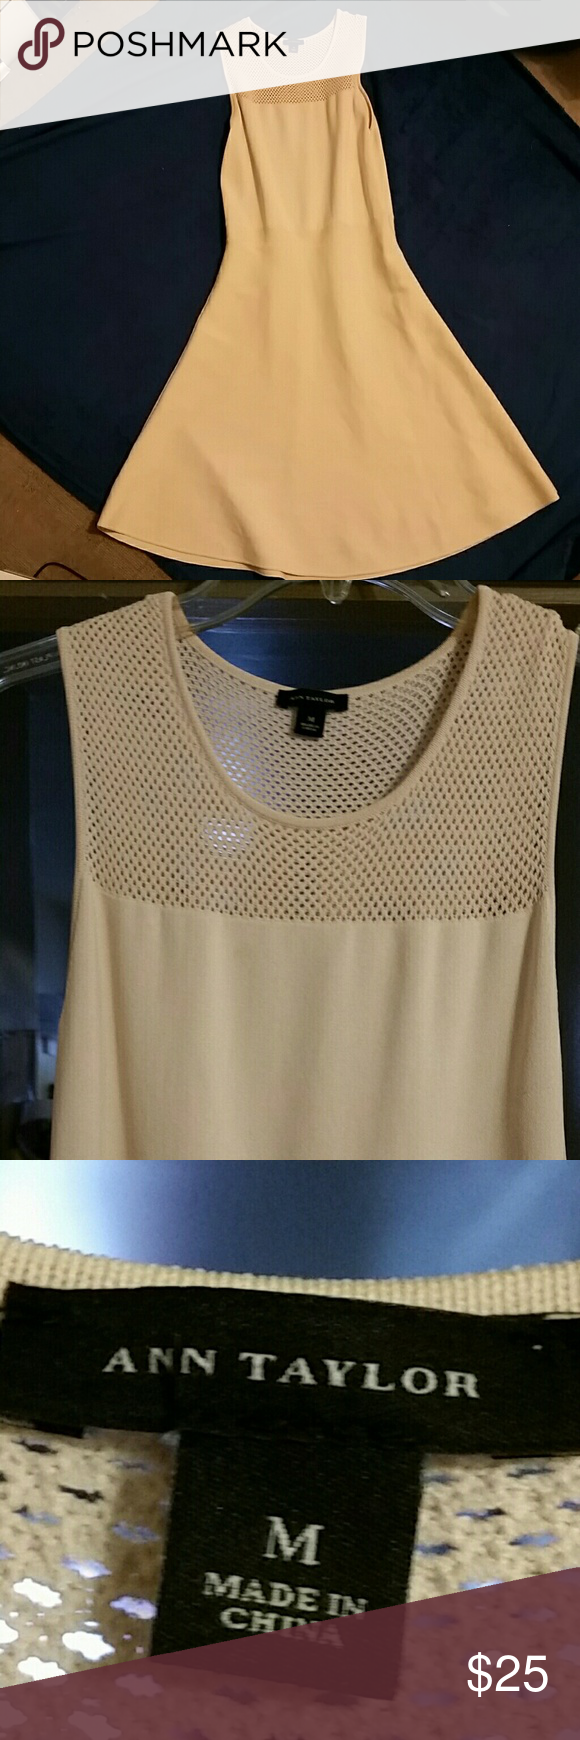 Ann Taylor Cream Cocktail Summer Dress Sleeveless cream colored summery cocktail dress. Fluted neckline with punch out feminine detail. Size 10 Ann Taylor Dresses Mini